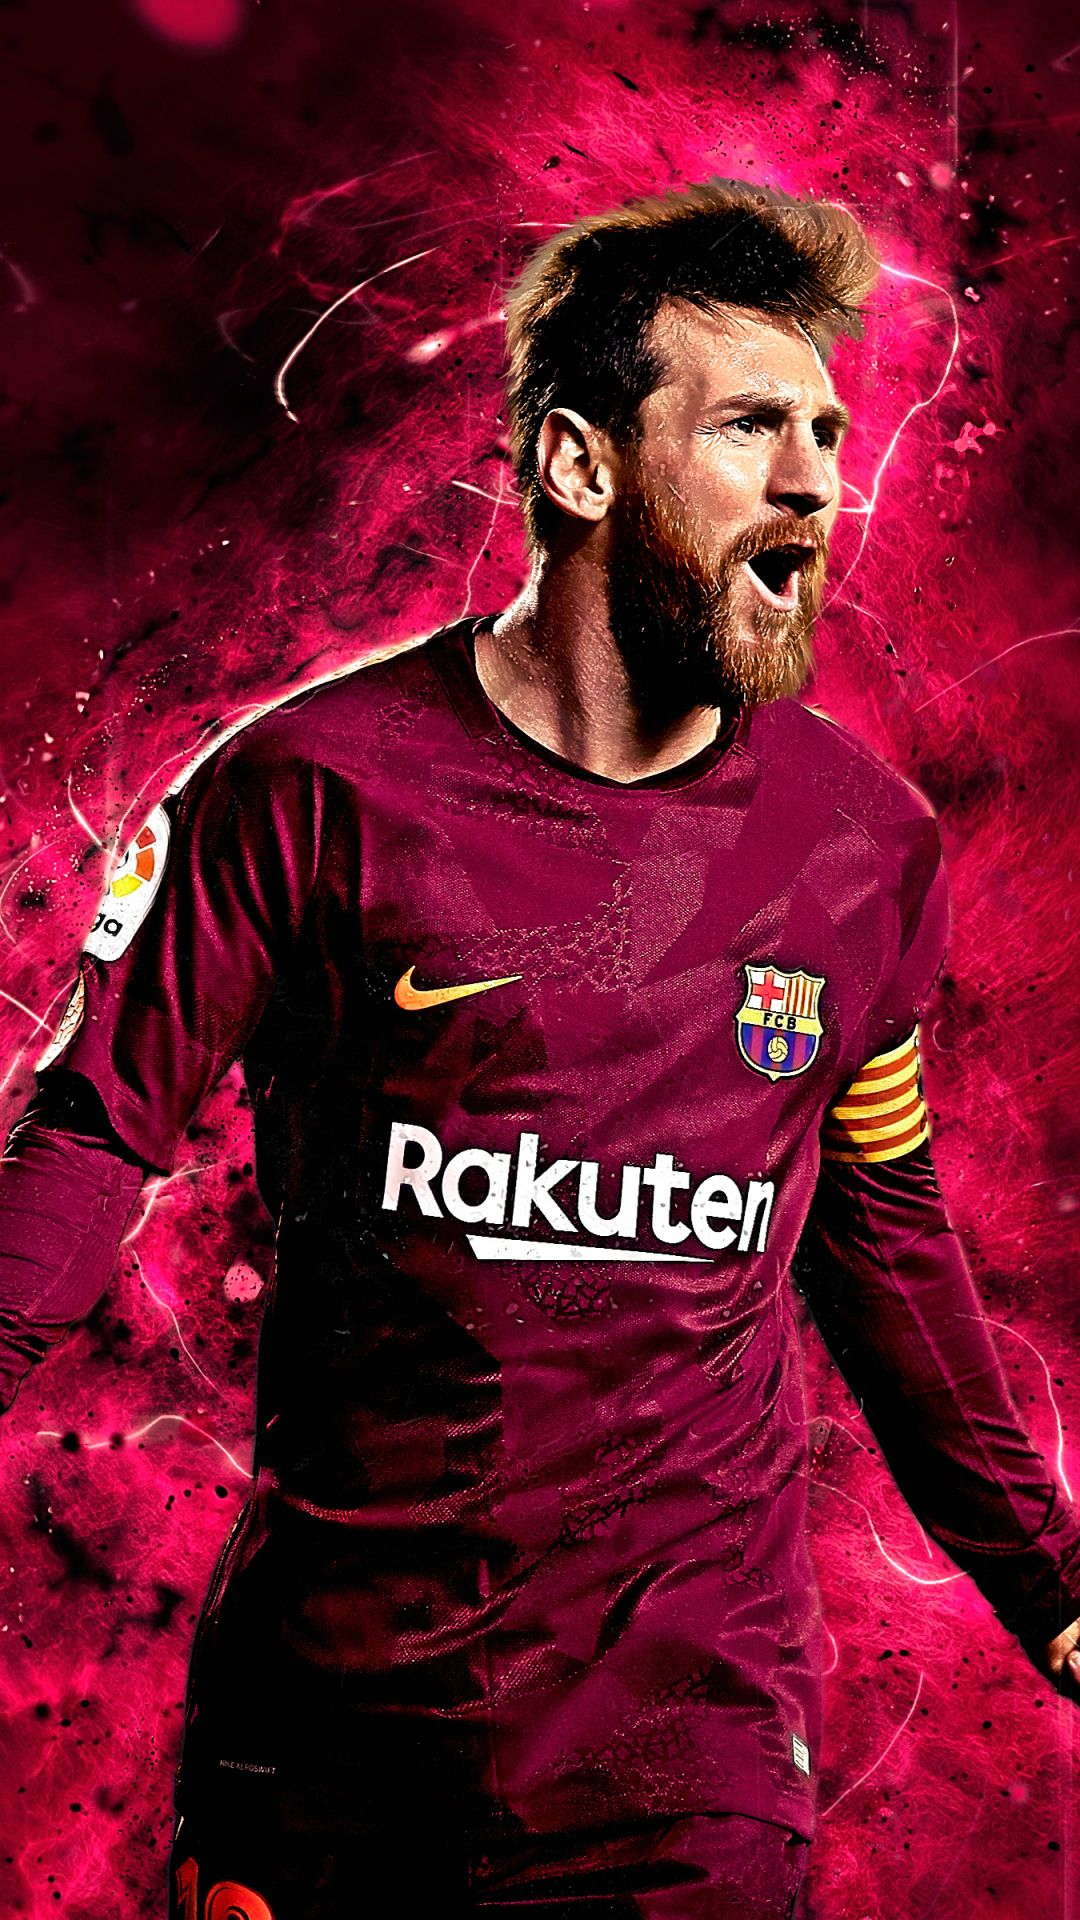 Cool Messi Image Is Best Wallpaper On Flowerswallpaper Info If You Like It Iphone Android Wallpaper In 2020 Lionel Messi Wallpapers Lionel Messi Messi And Ronaldo